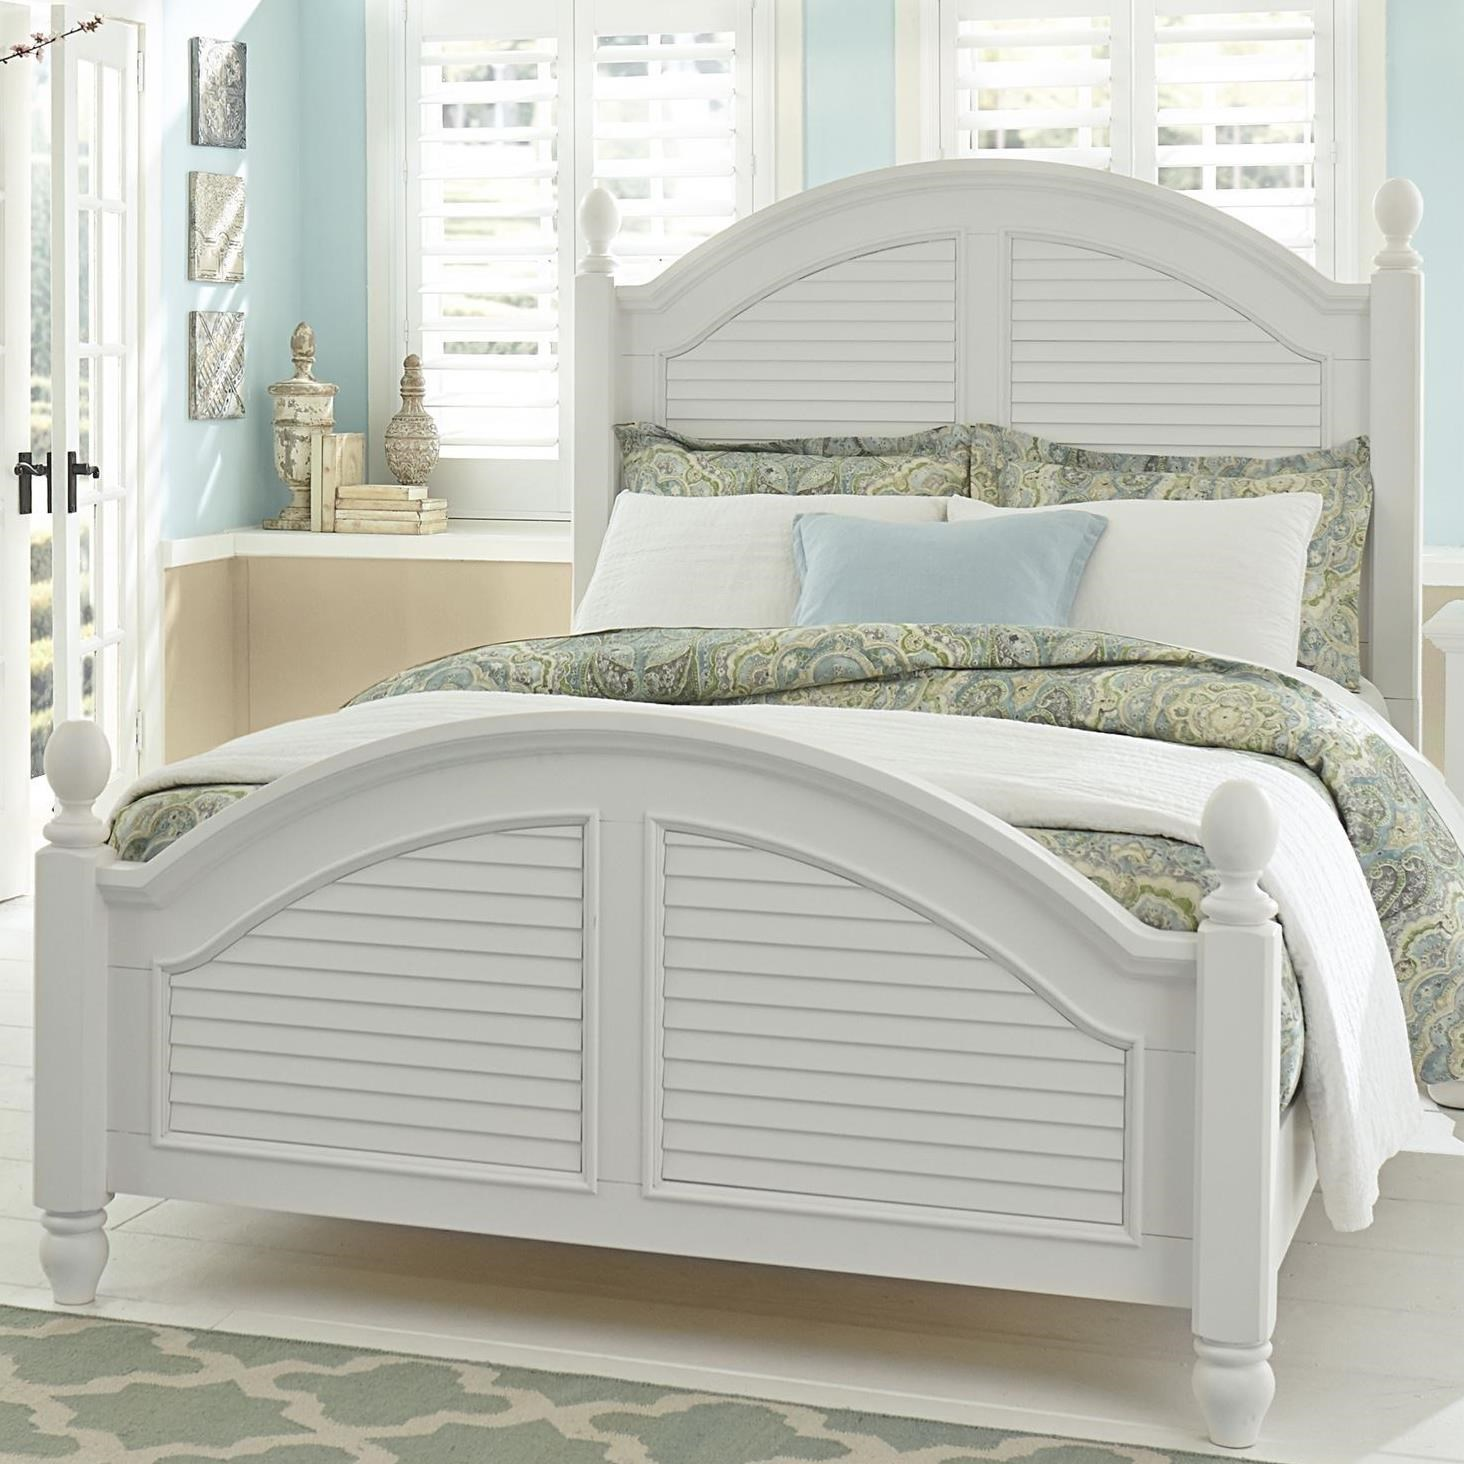 Freedom Headboard Freedom Furniture Summer House Cottage Queen Poster Bed